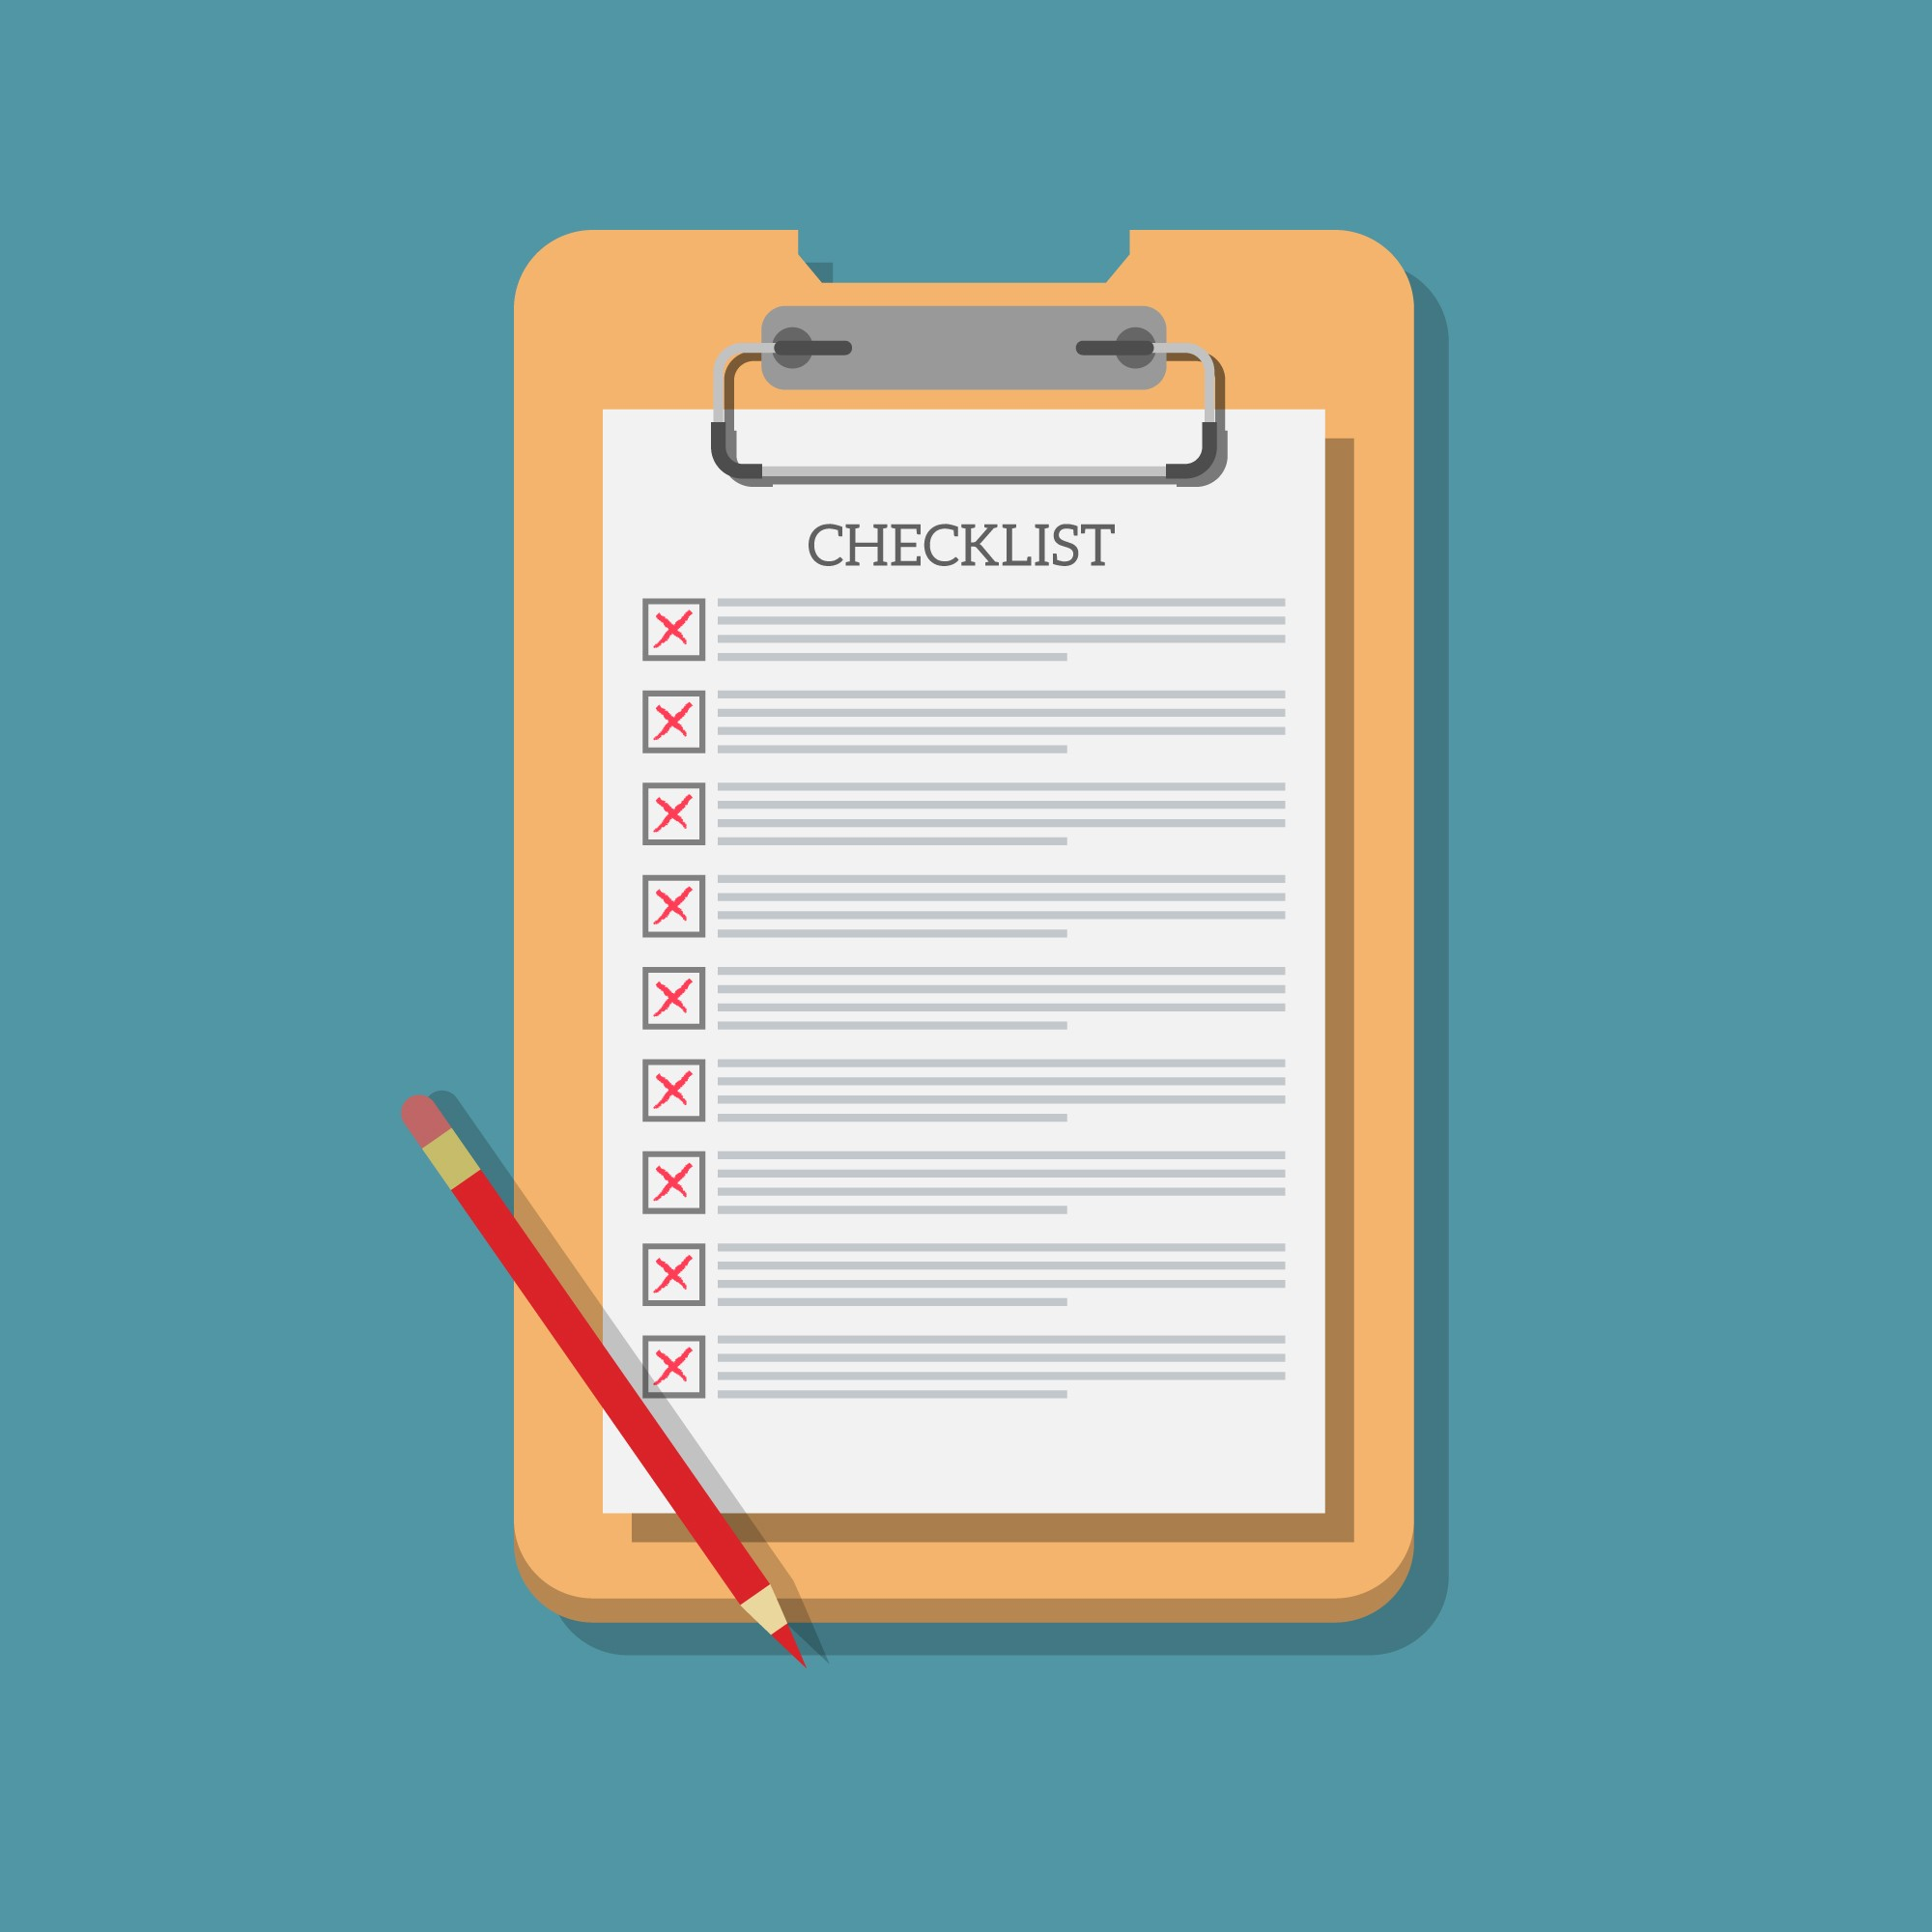 Background of checklist with red pencil